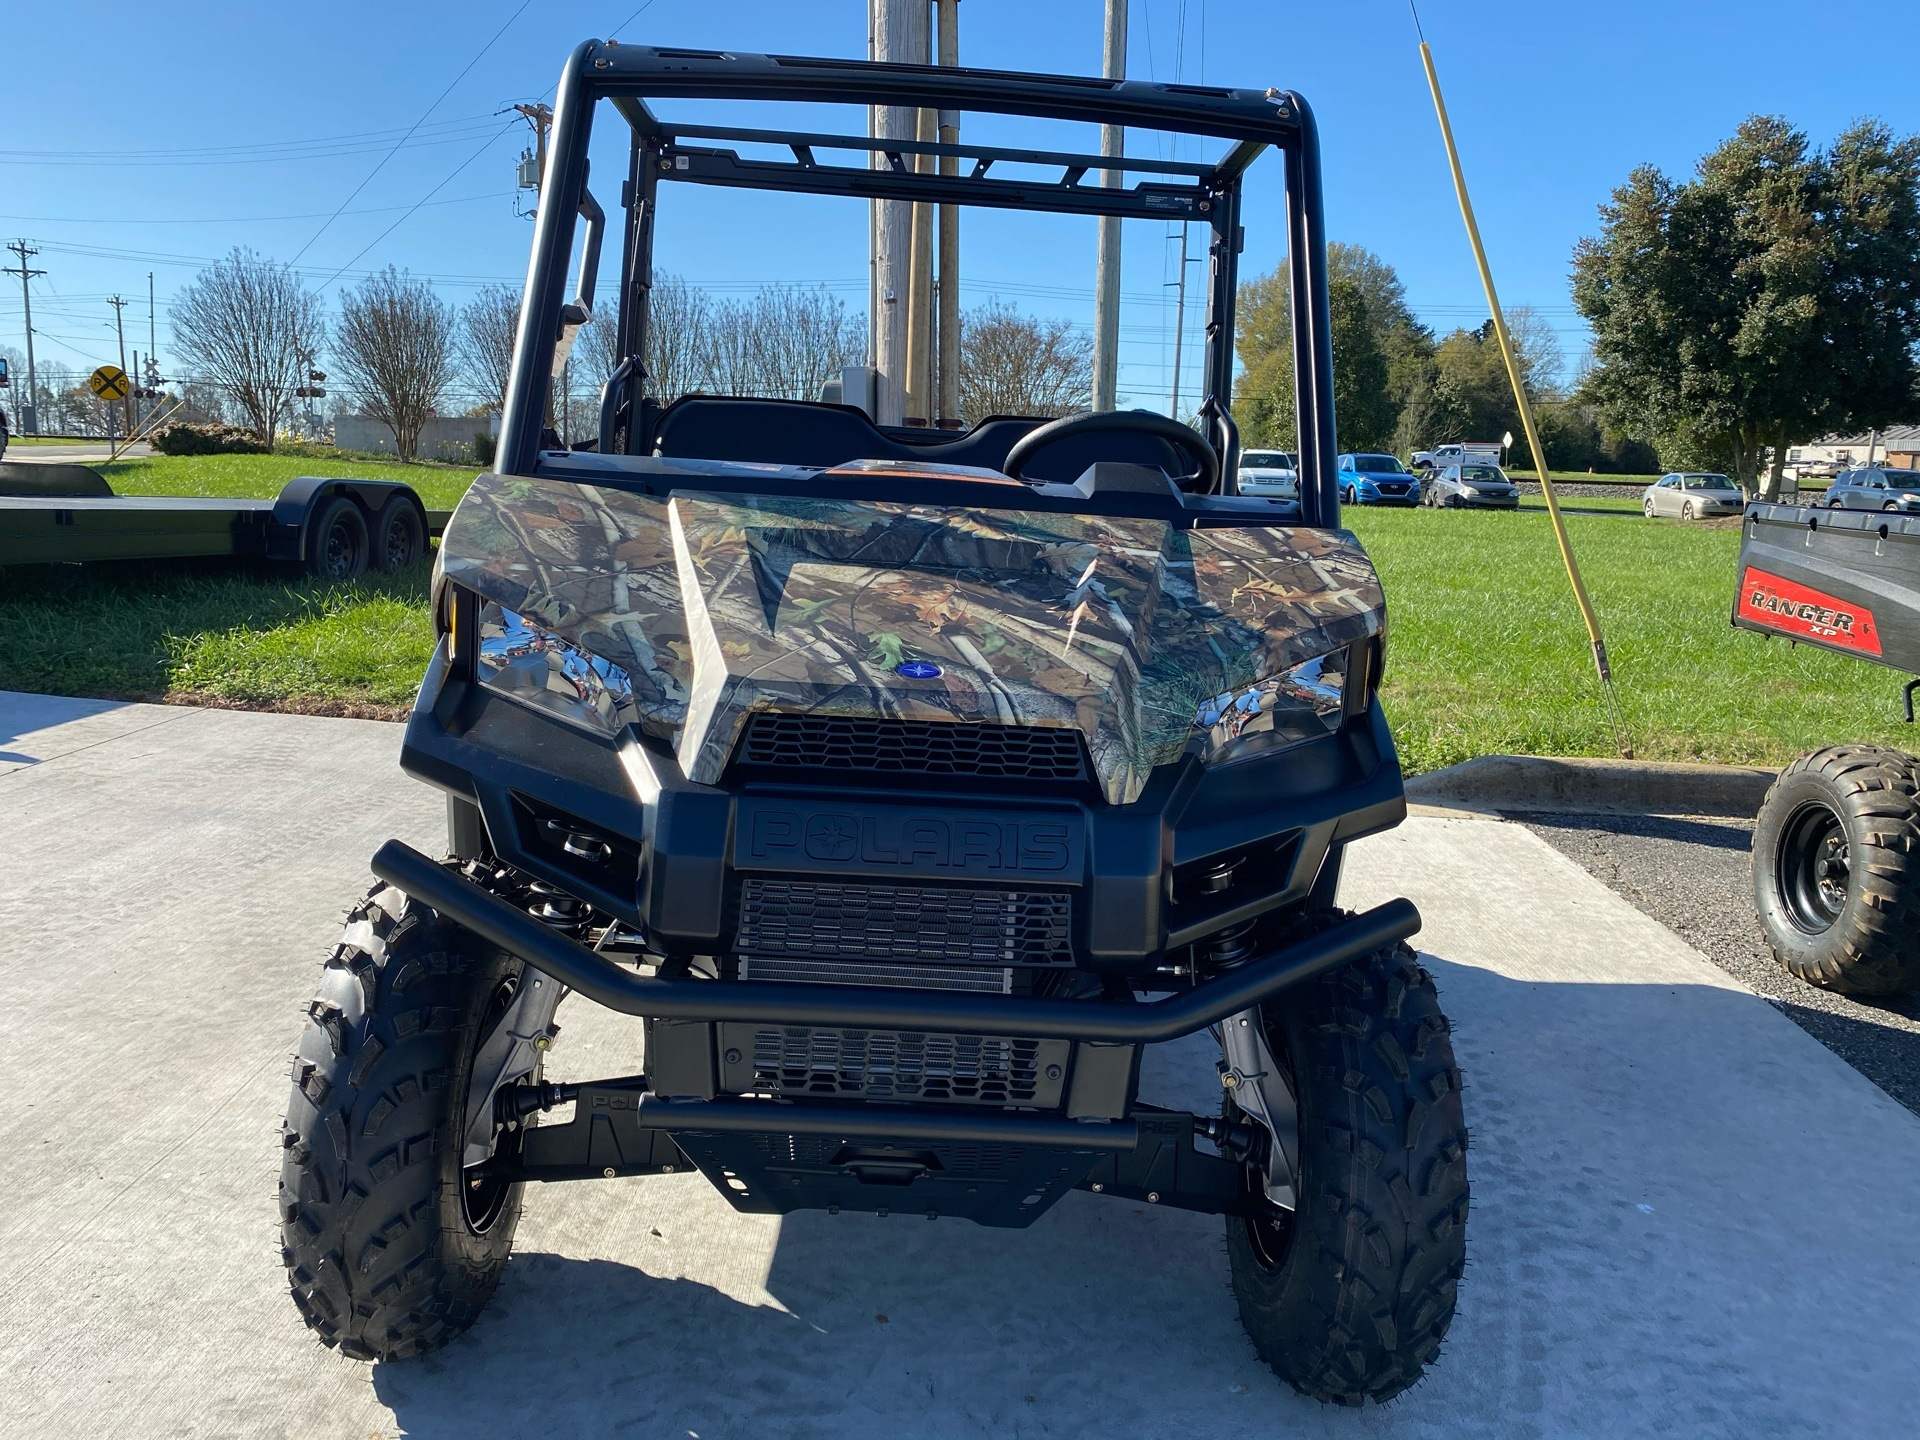 2021 Polaris Ranger 570 in Statesville, North Carolina - Photo 3